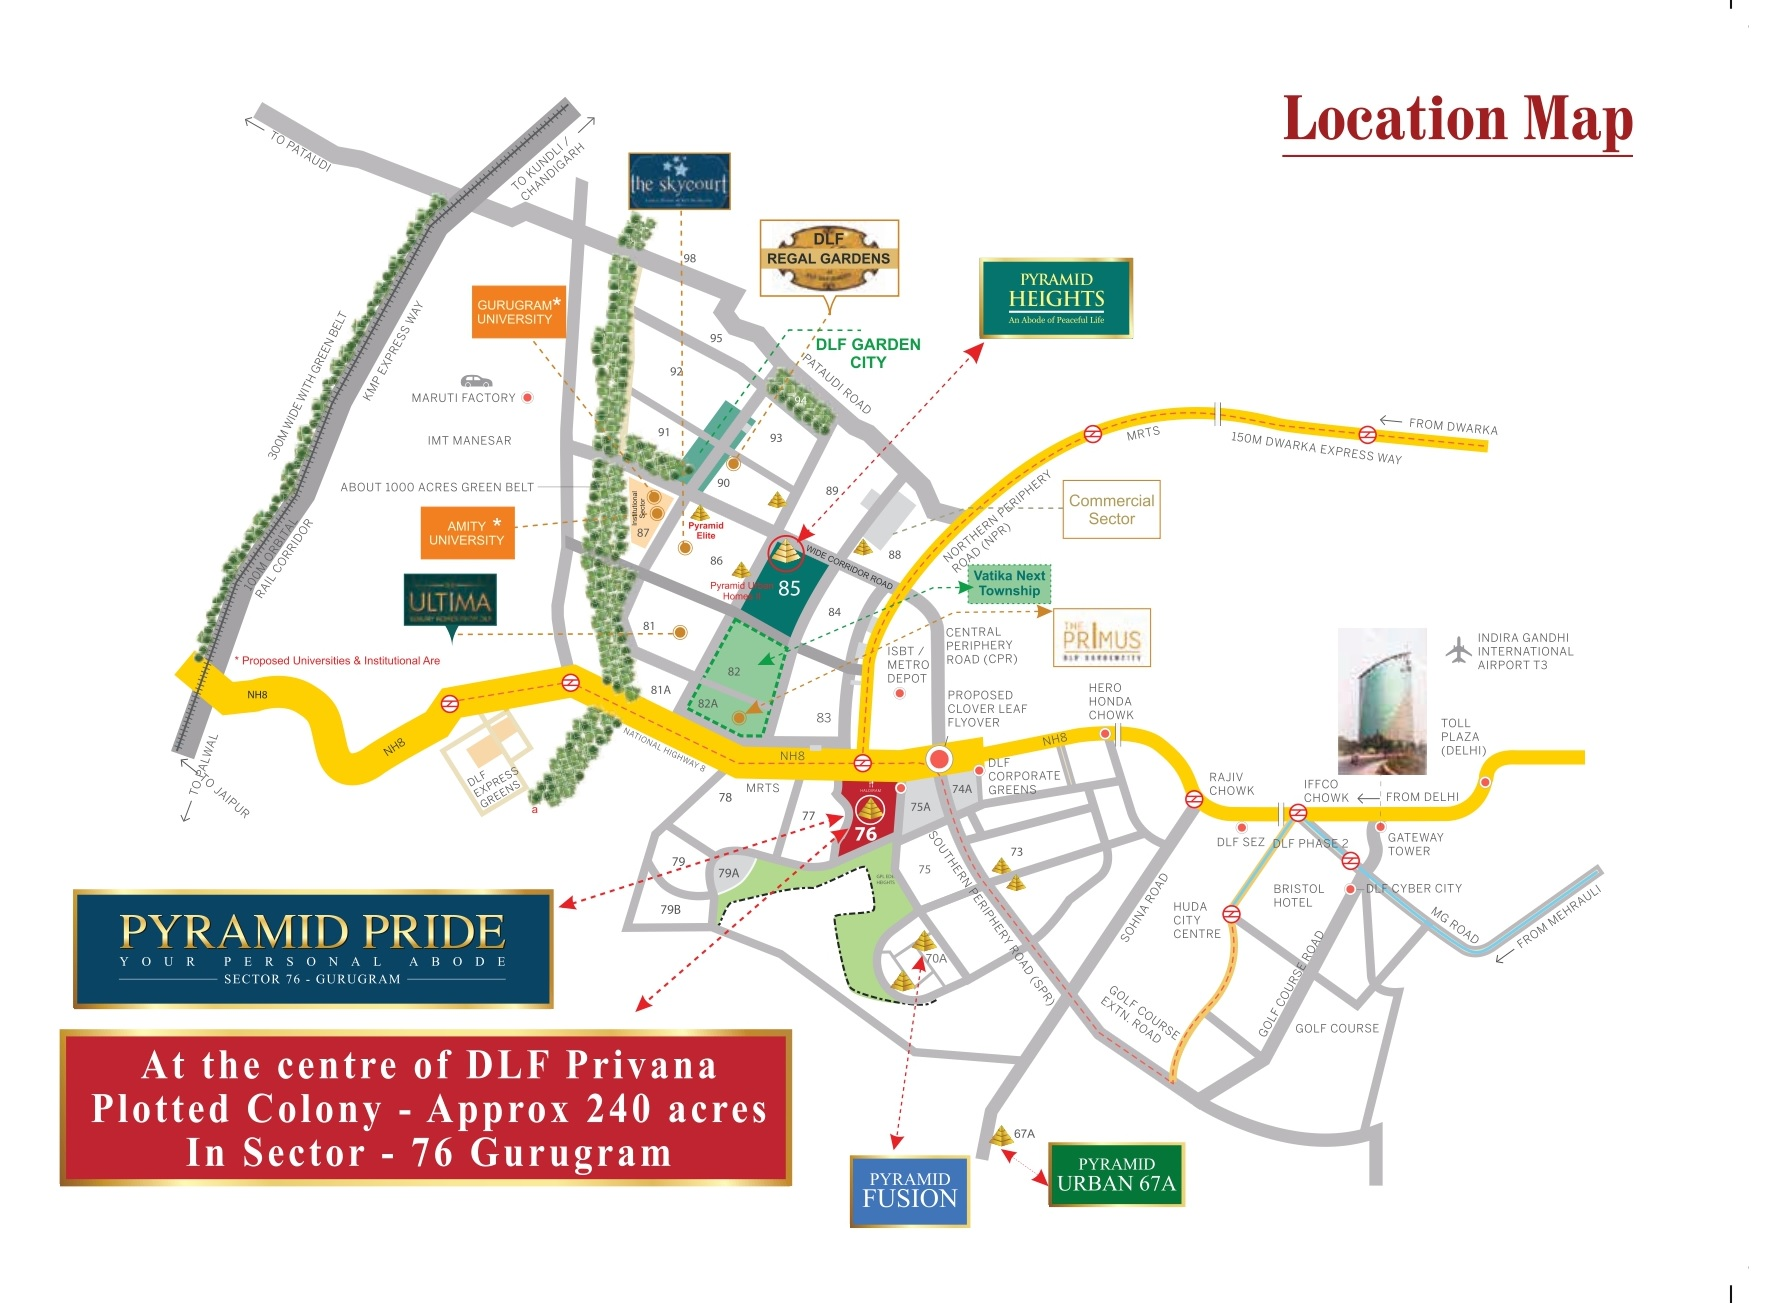 Location Map Pyramid Pride Sector 76 Gurugram